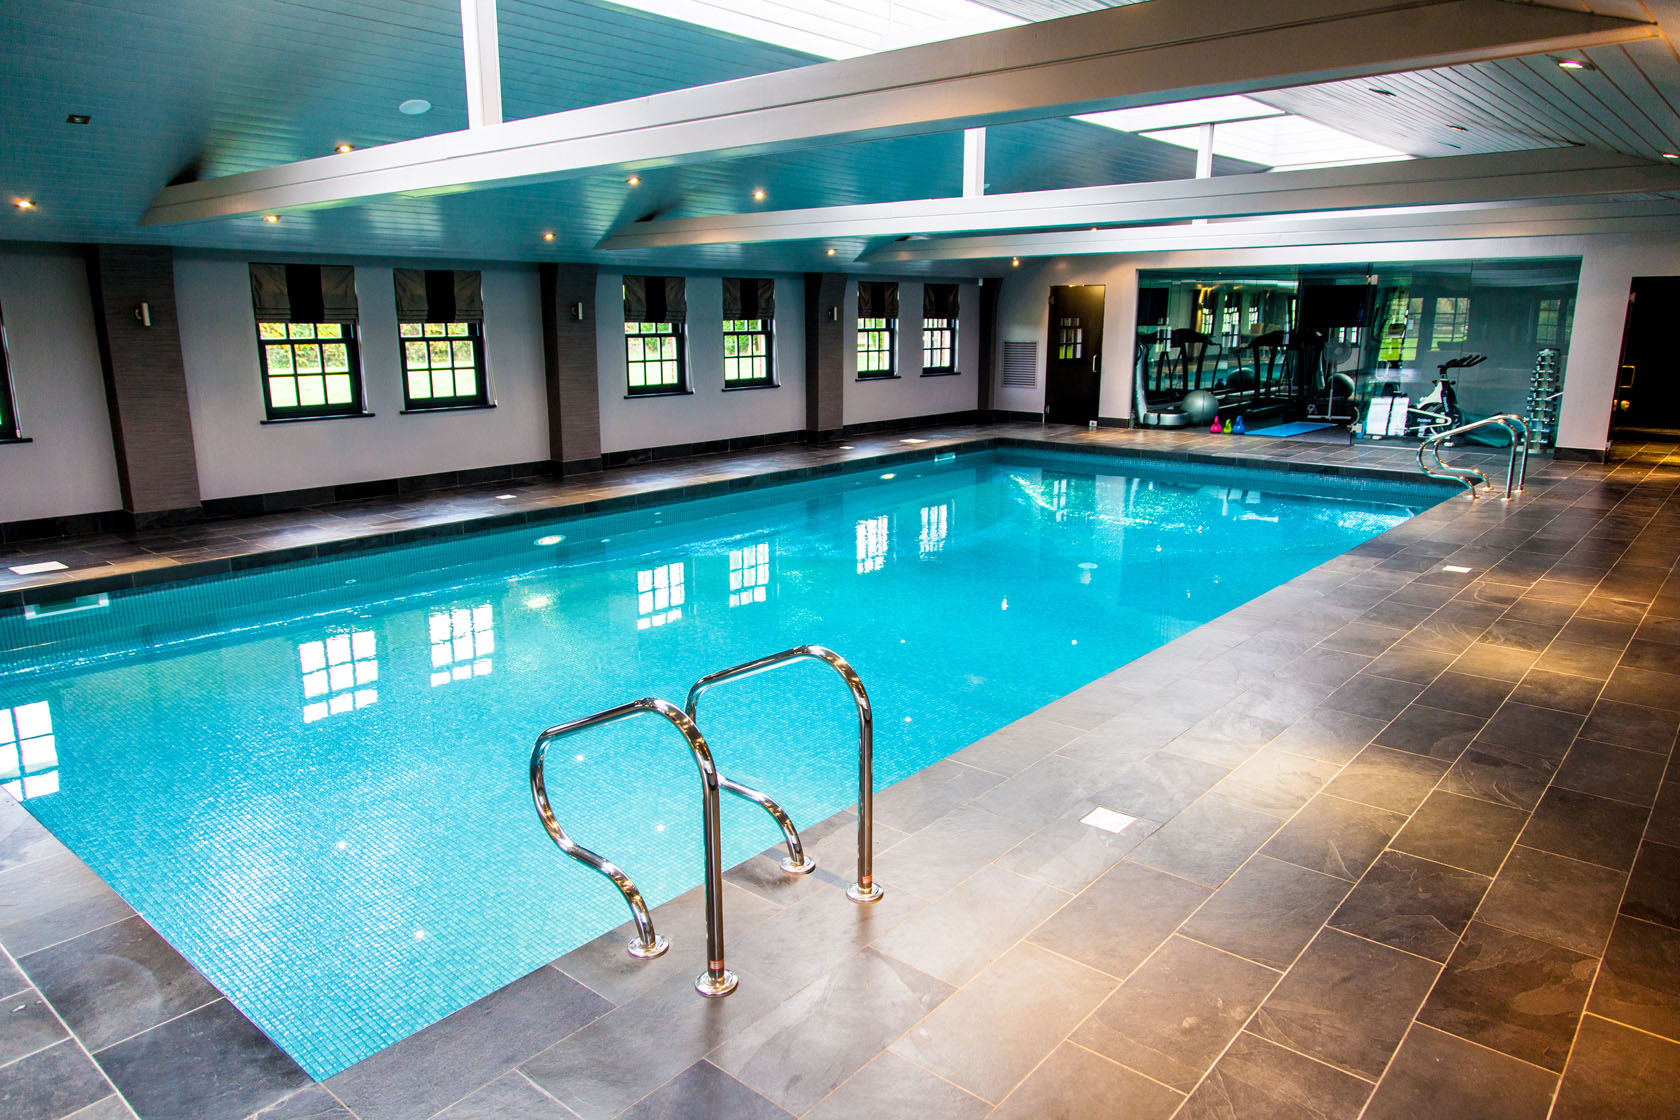 Case study of gareth louise s pool in sproston preston - Preston hotels with swimming pool ...